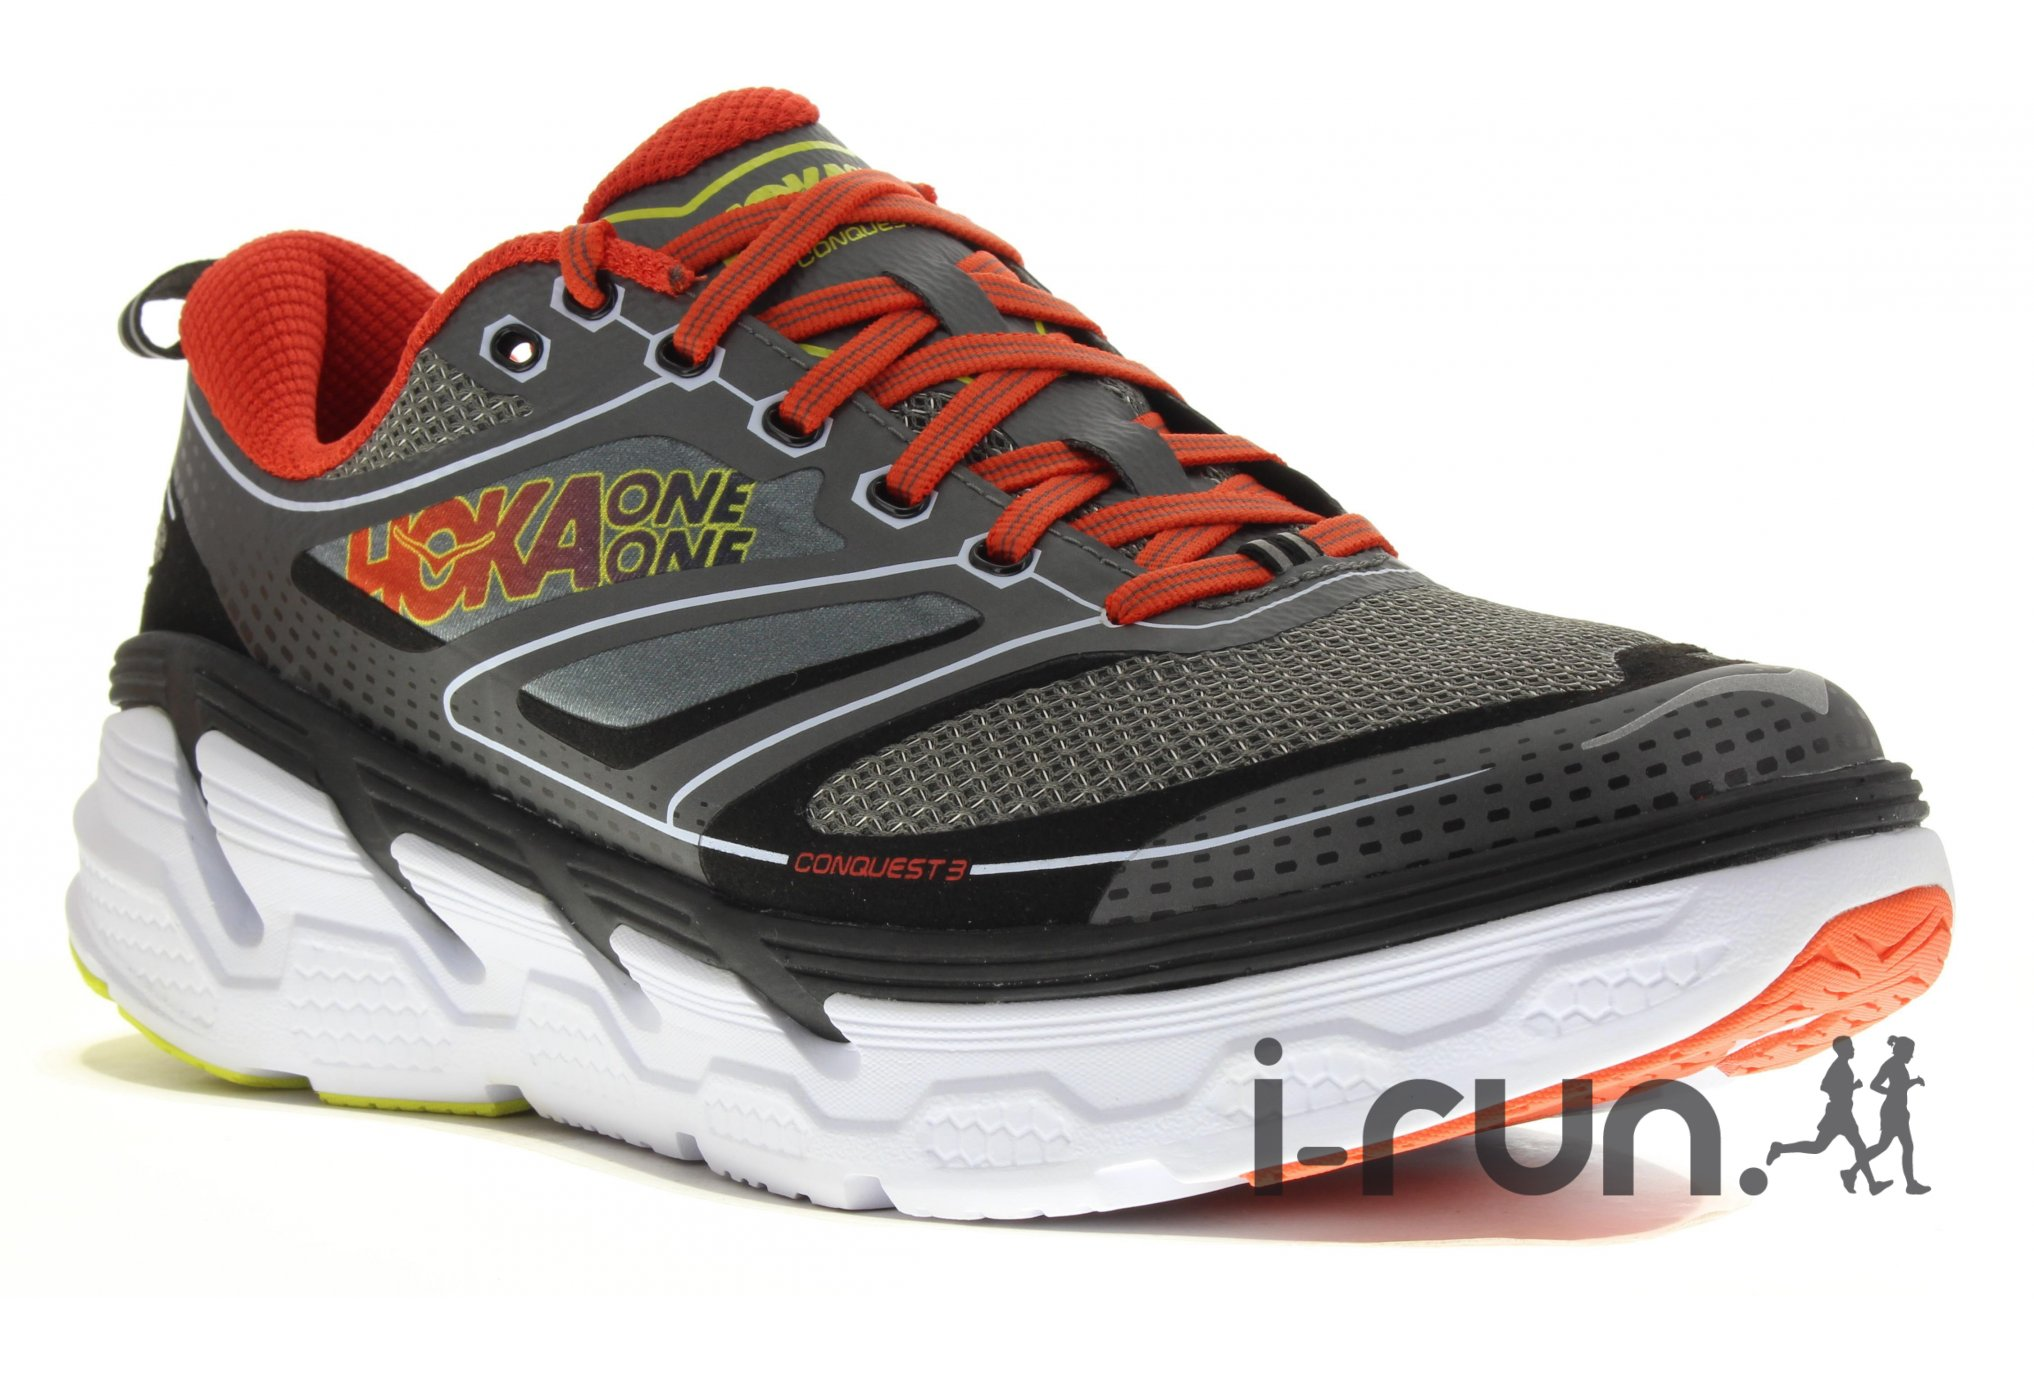 Hoka One One Conquest 3